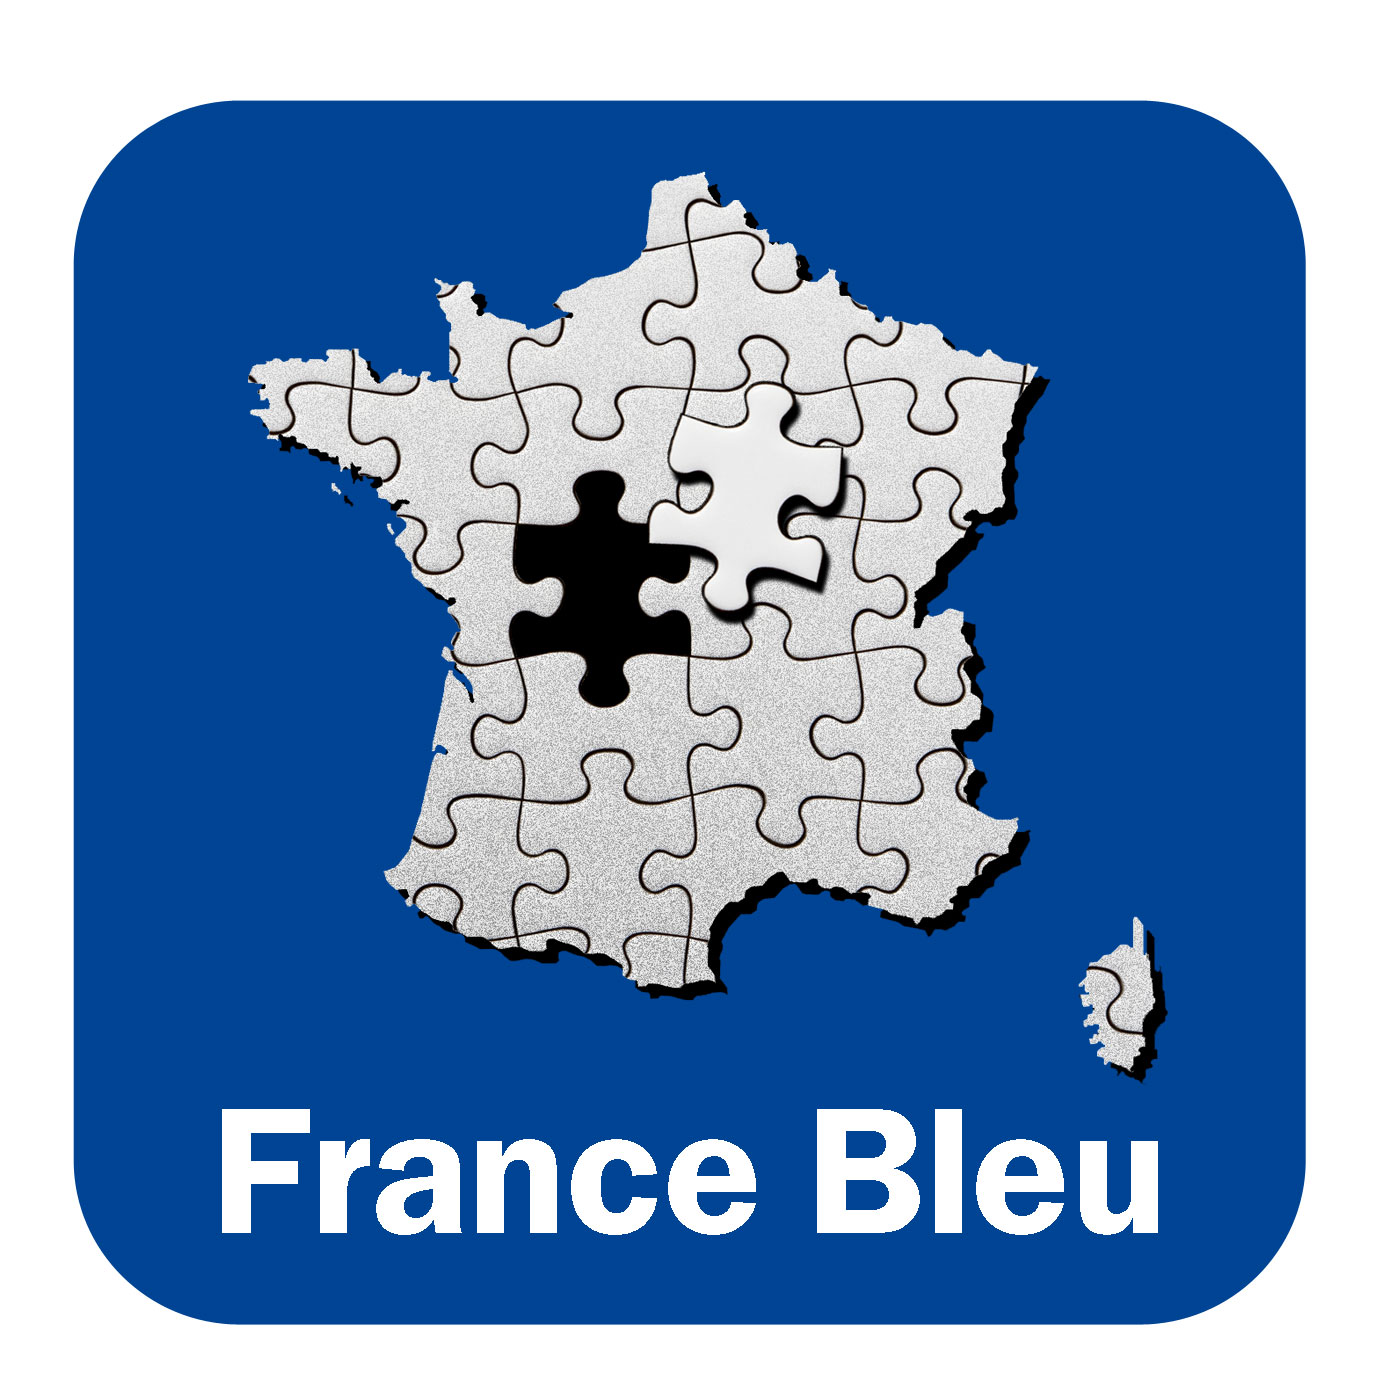 On cuisine ensemble France Bleu Elsass